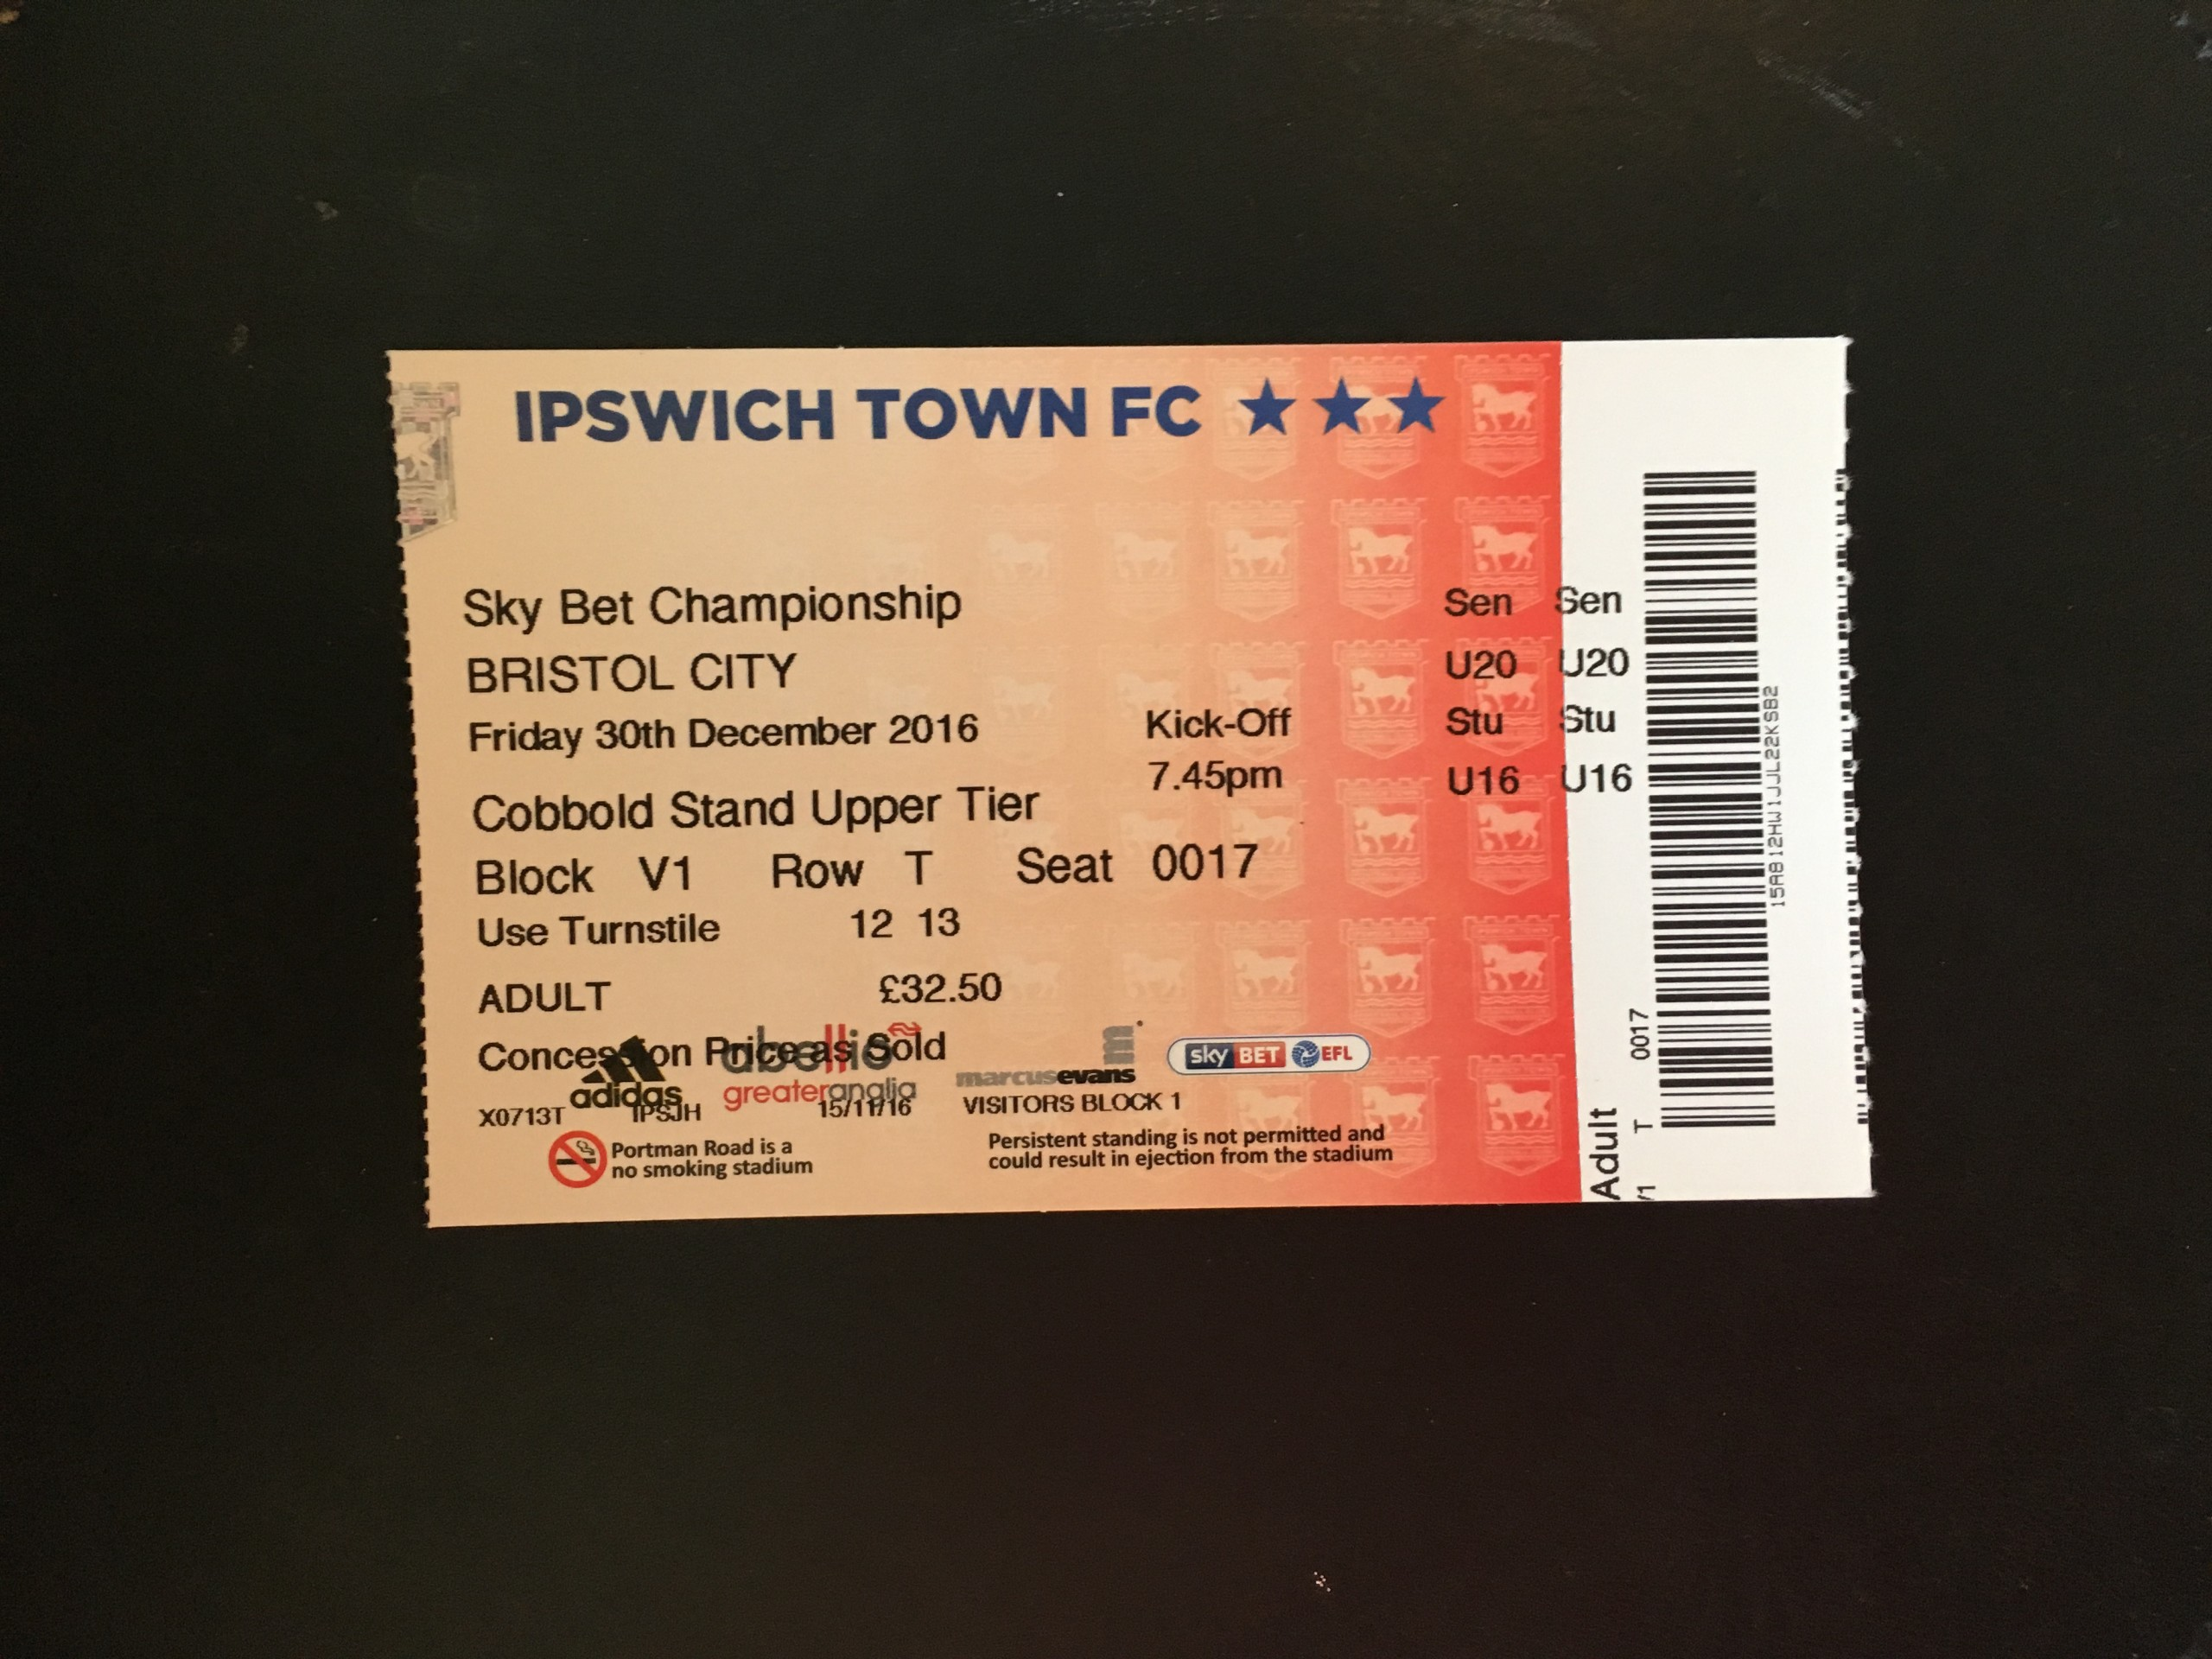 Ipswich Town v Bristol City 30-12-2016 Ticket